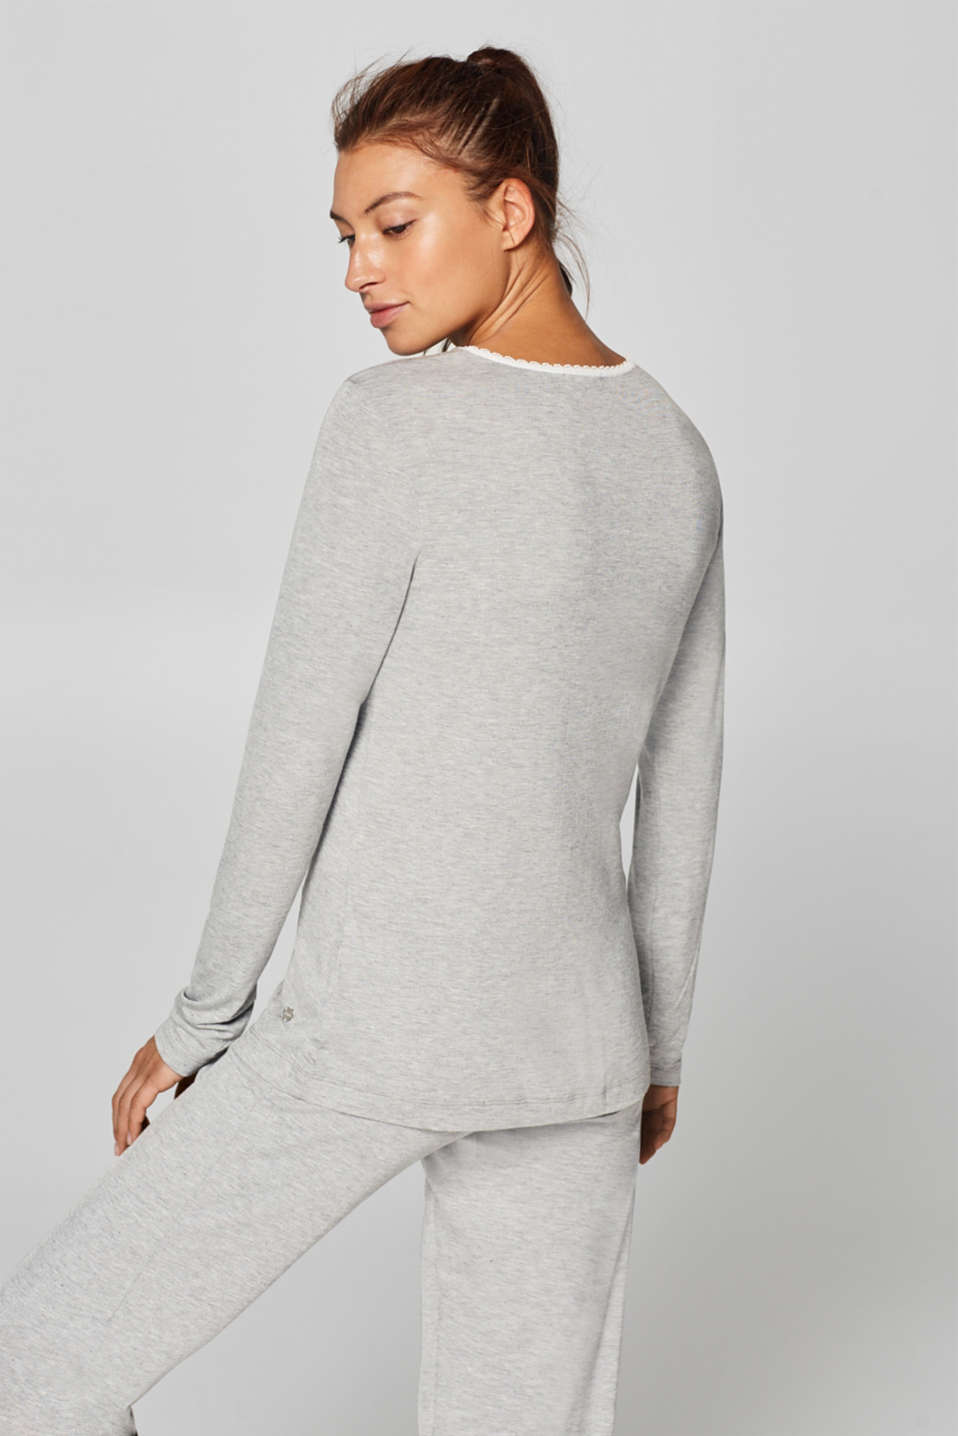 Stretch long sleeve top trimmed with lace, MEDIUM GREY, detail image number 1